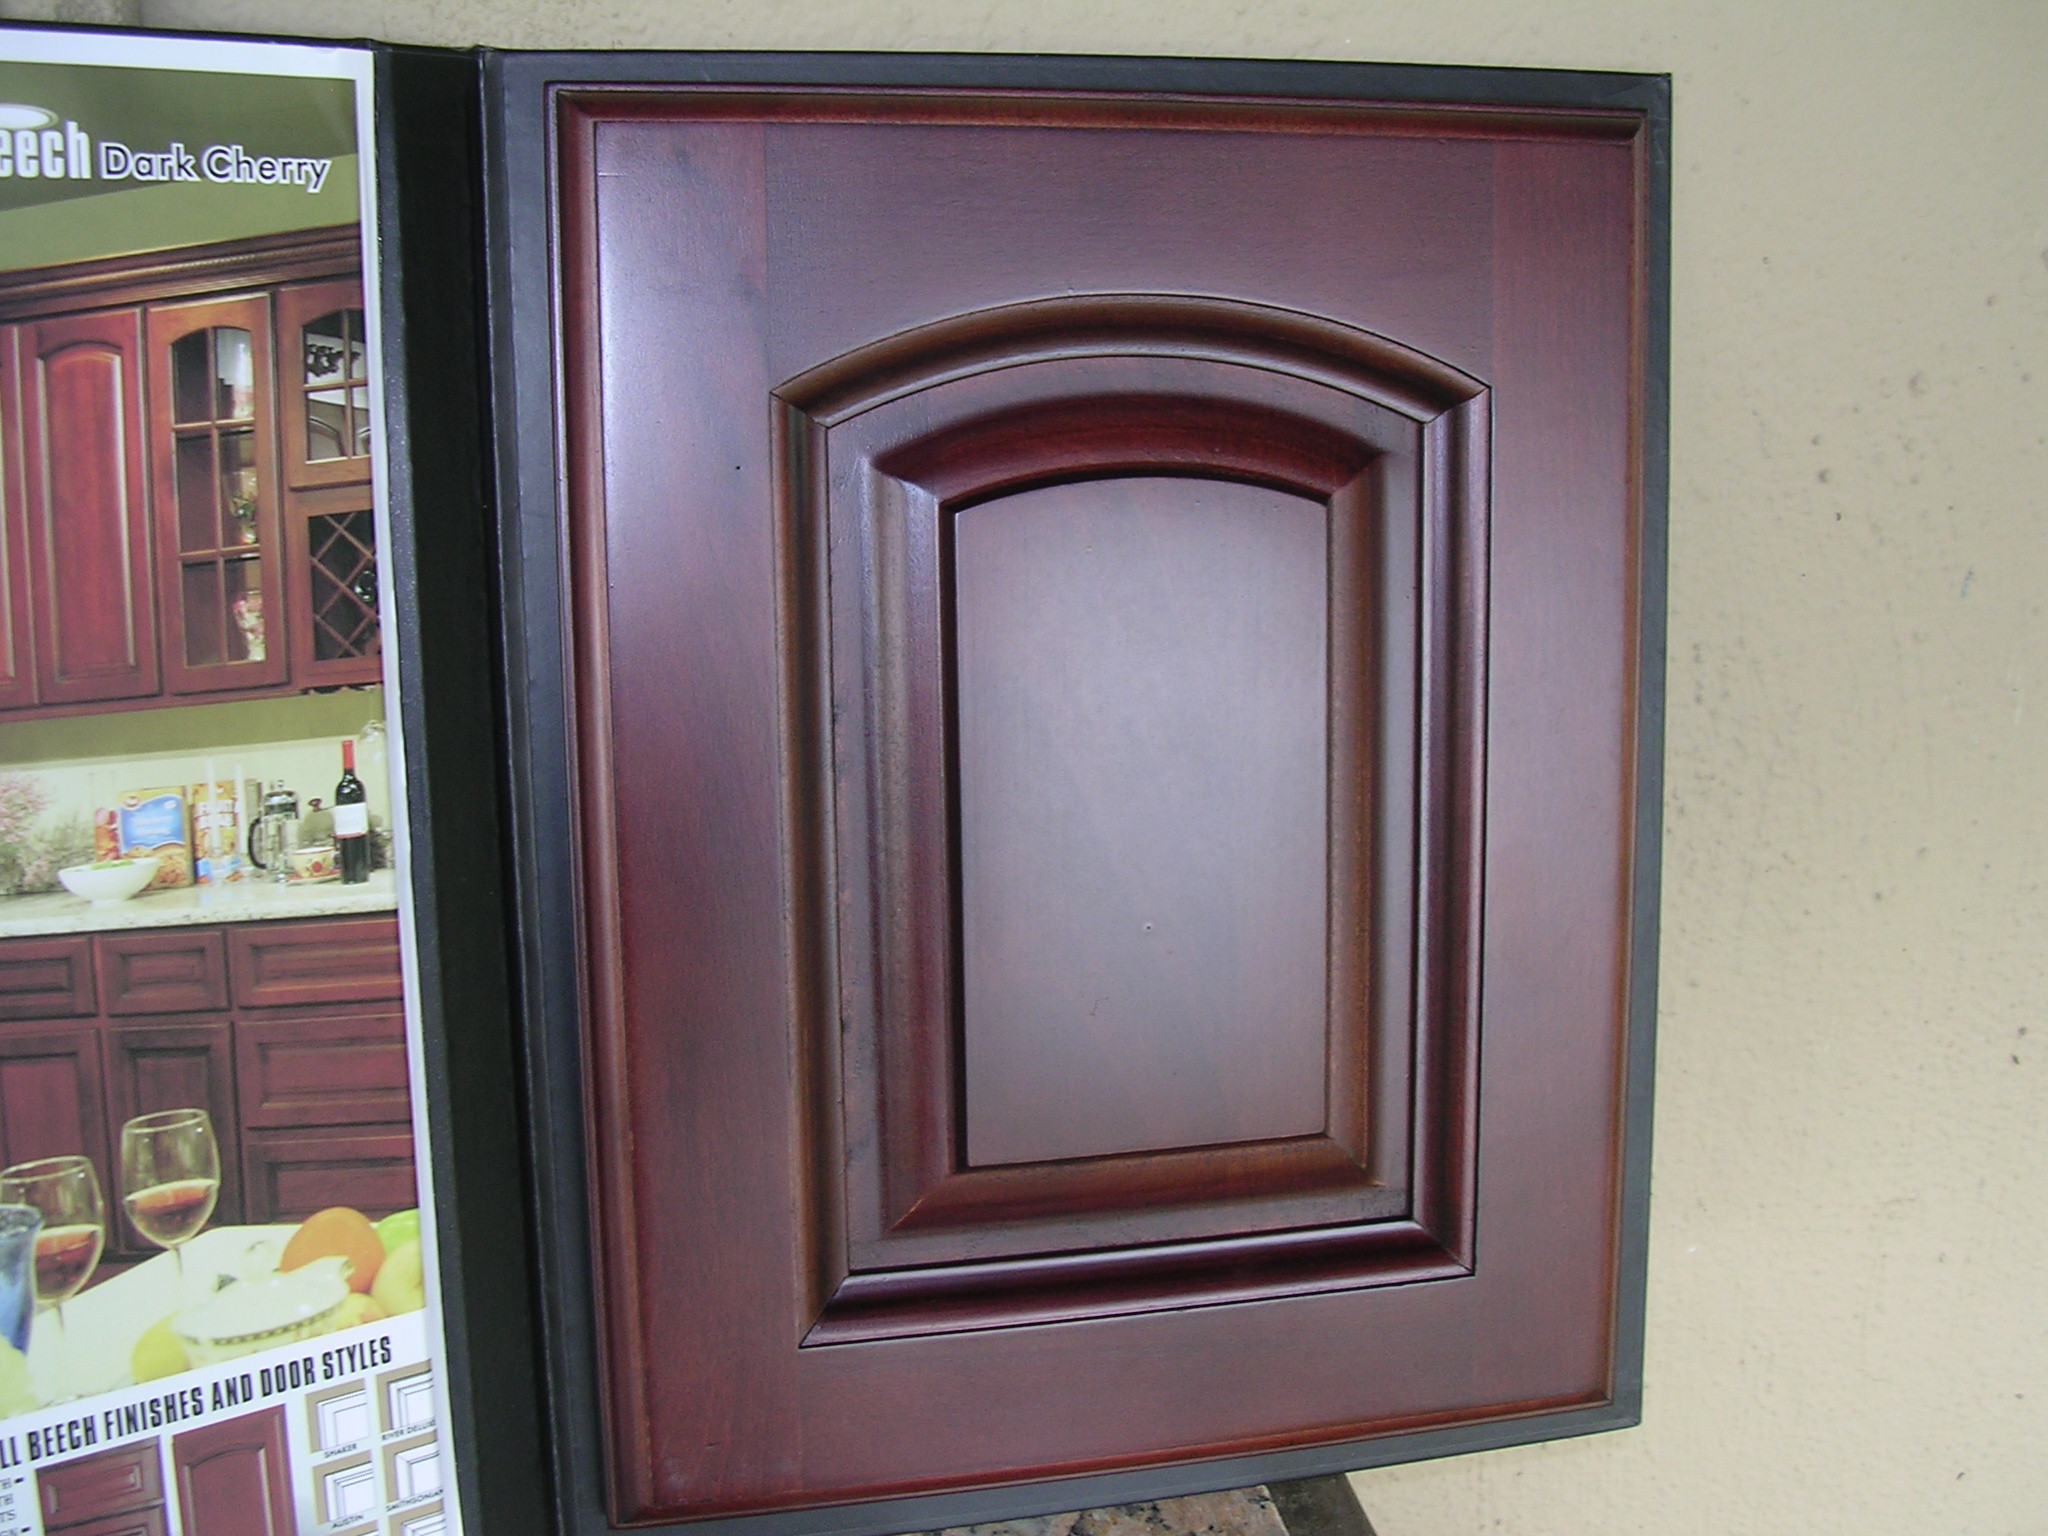 DISCONTINUED Beech Dark cherry color arched door Kitchen Cabinets catalog